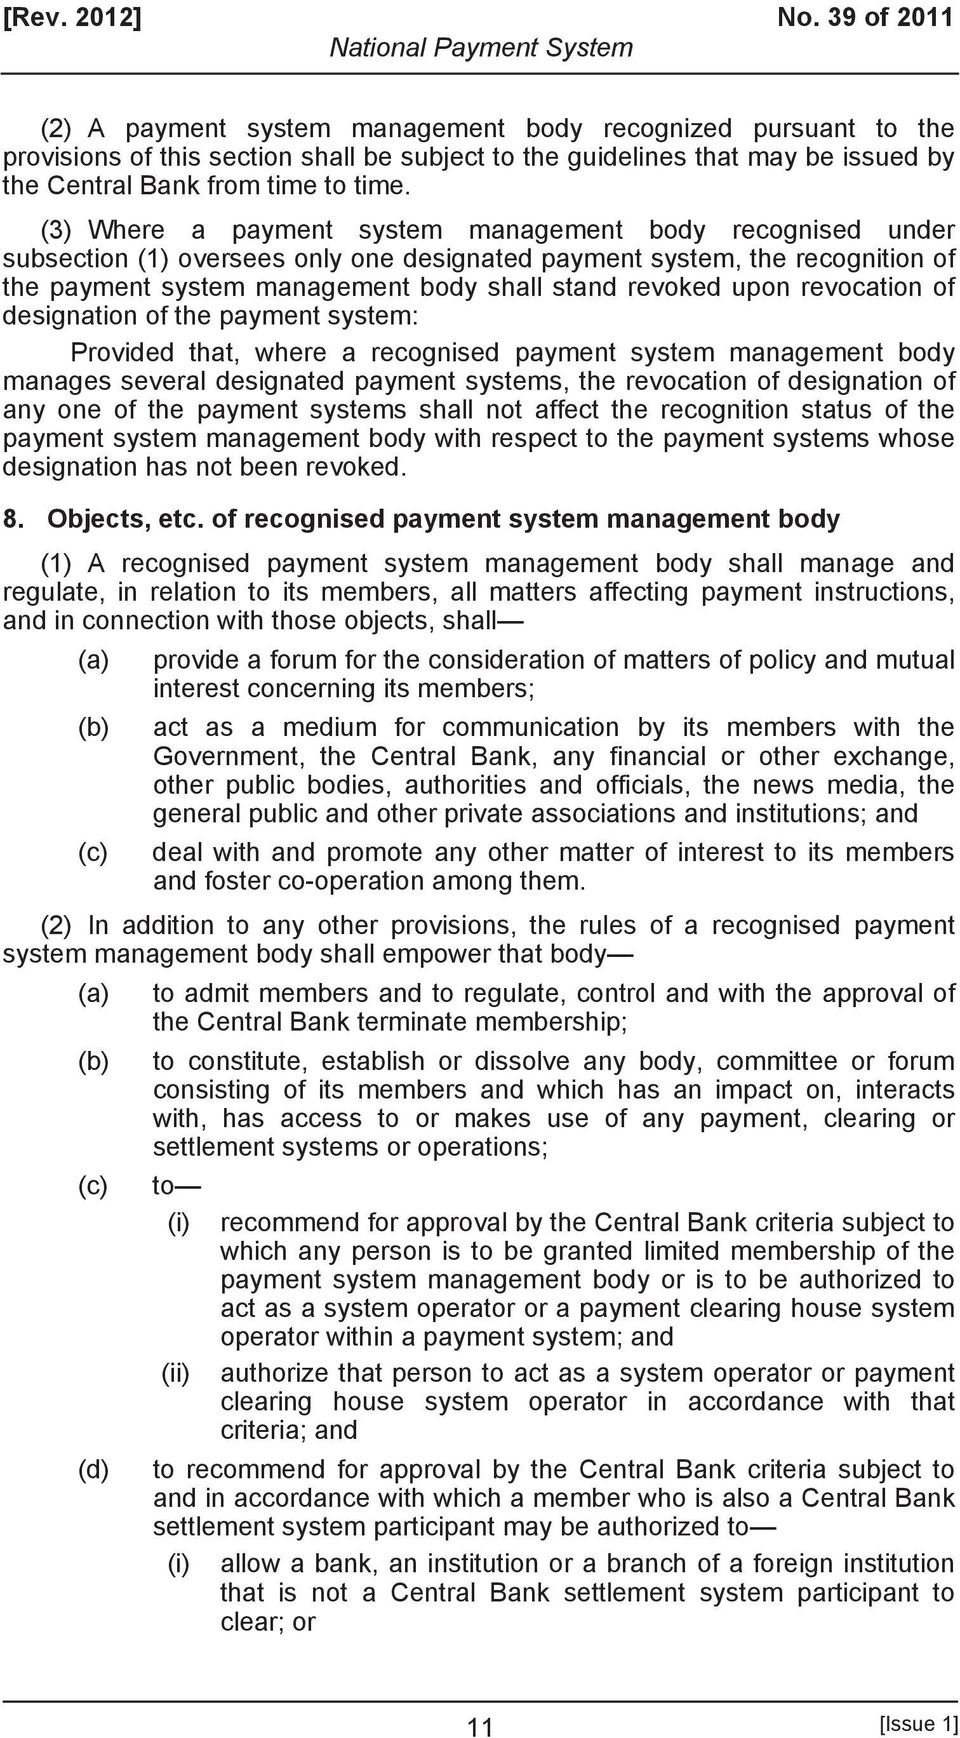 (3) Where a payment system management body recognised under subsection (1) oversees only one designated payment system, the recognition of the payment system management body shall stand revoked upon